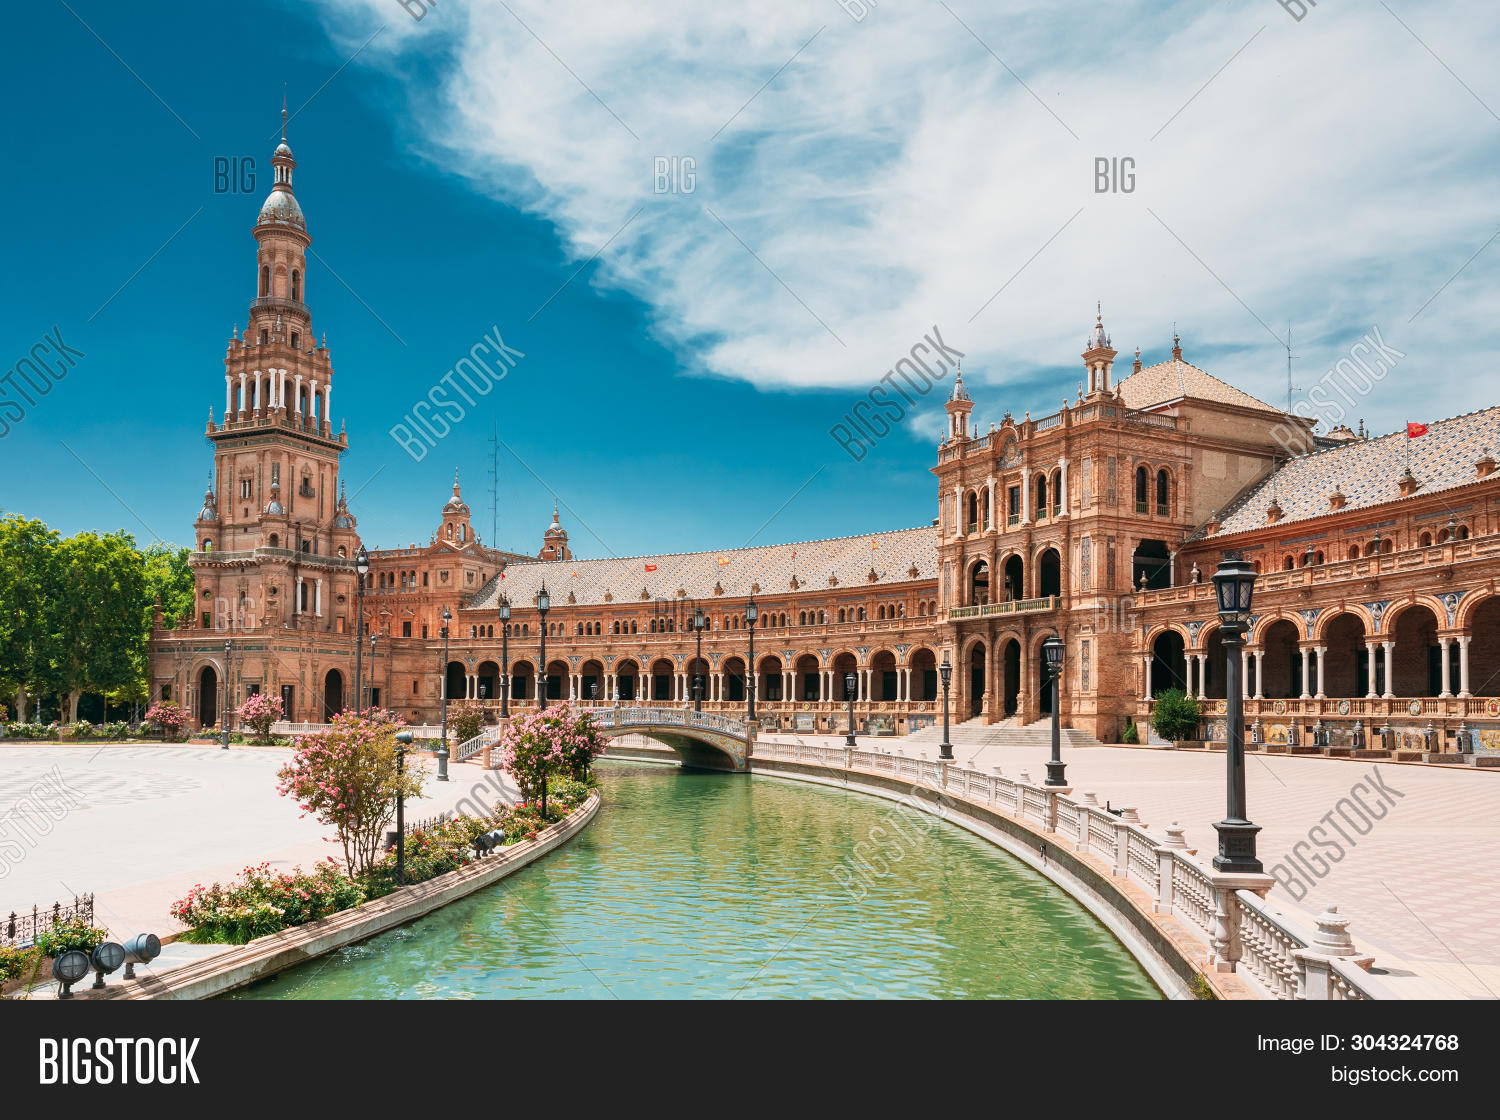 Plaza,Seville,andalucia,andalusia,architecture,attraction,beautiful,boat,building,canal,city,culture,de,espana,europe,exterior,famous,heritage,historic,historical,history,holiday,house,landmark,mediterranean,monument,nobody,old,outdoor,palace,park,place,scene,sevilla,sightseeing,sky,spain,spanish,square,summer,town,traditional,travel,water